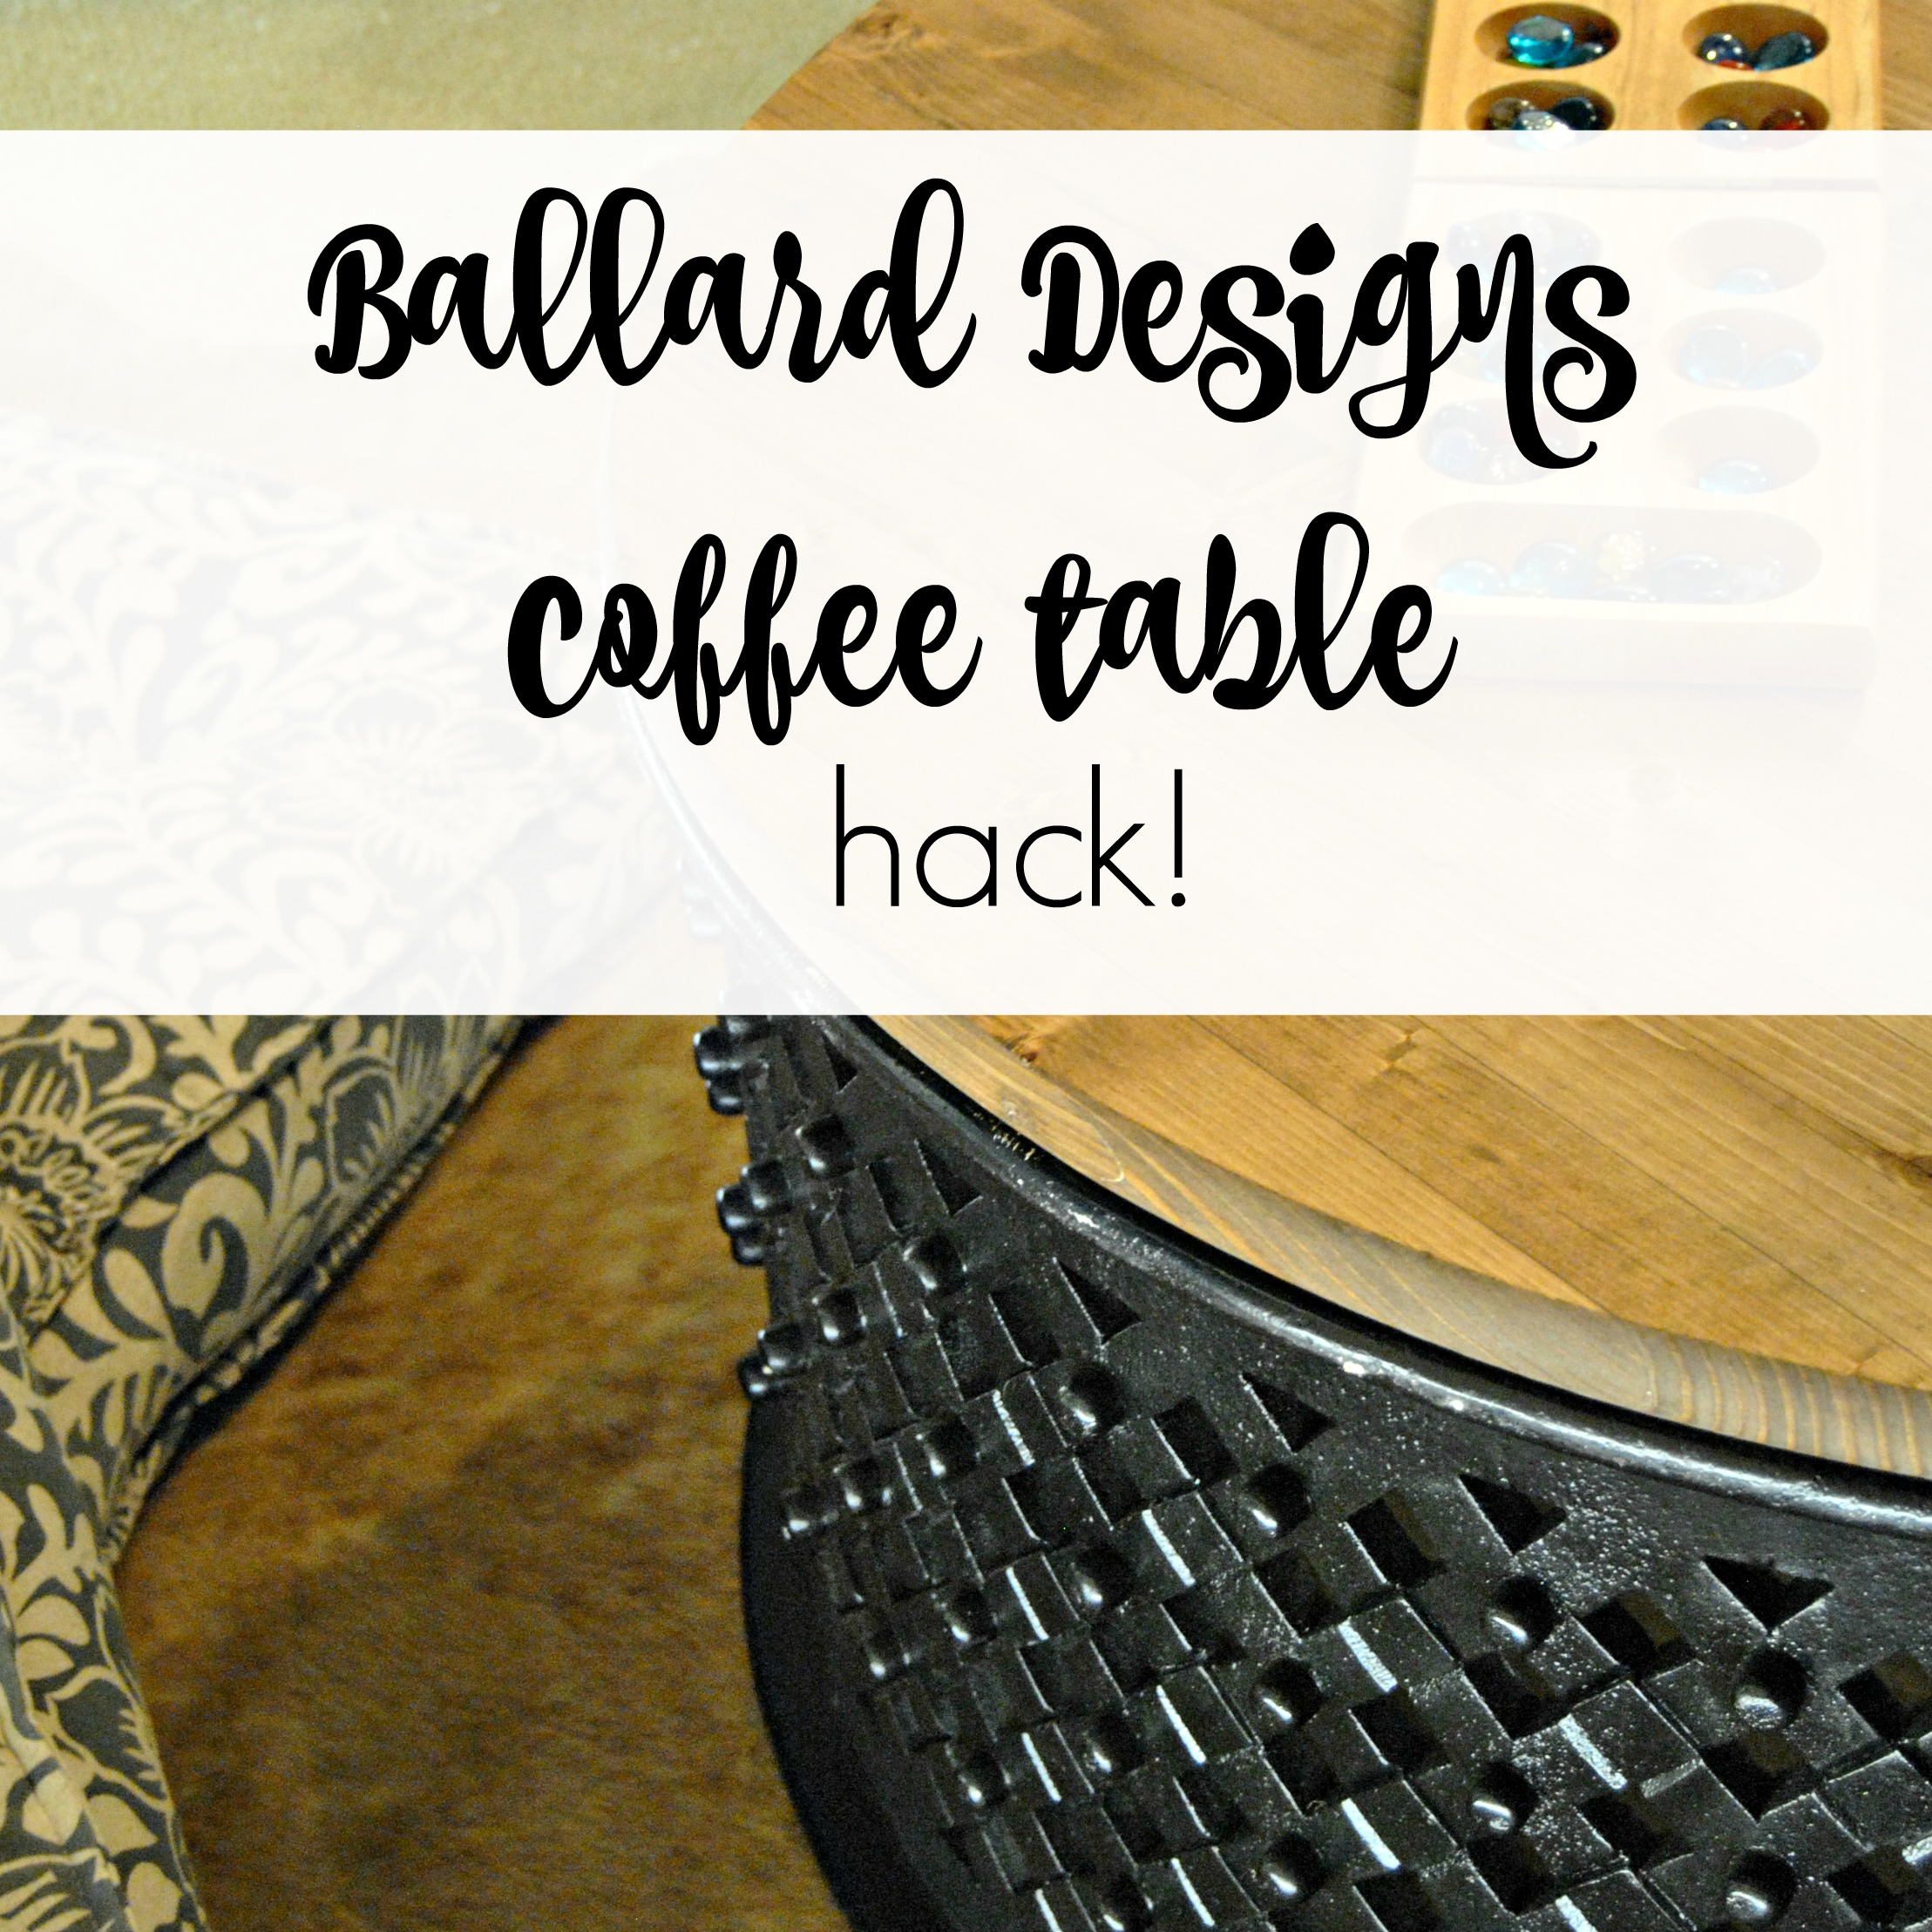 ballard designs coffee table hack ballard designs coffee table hack